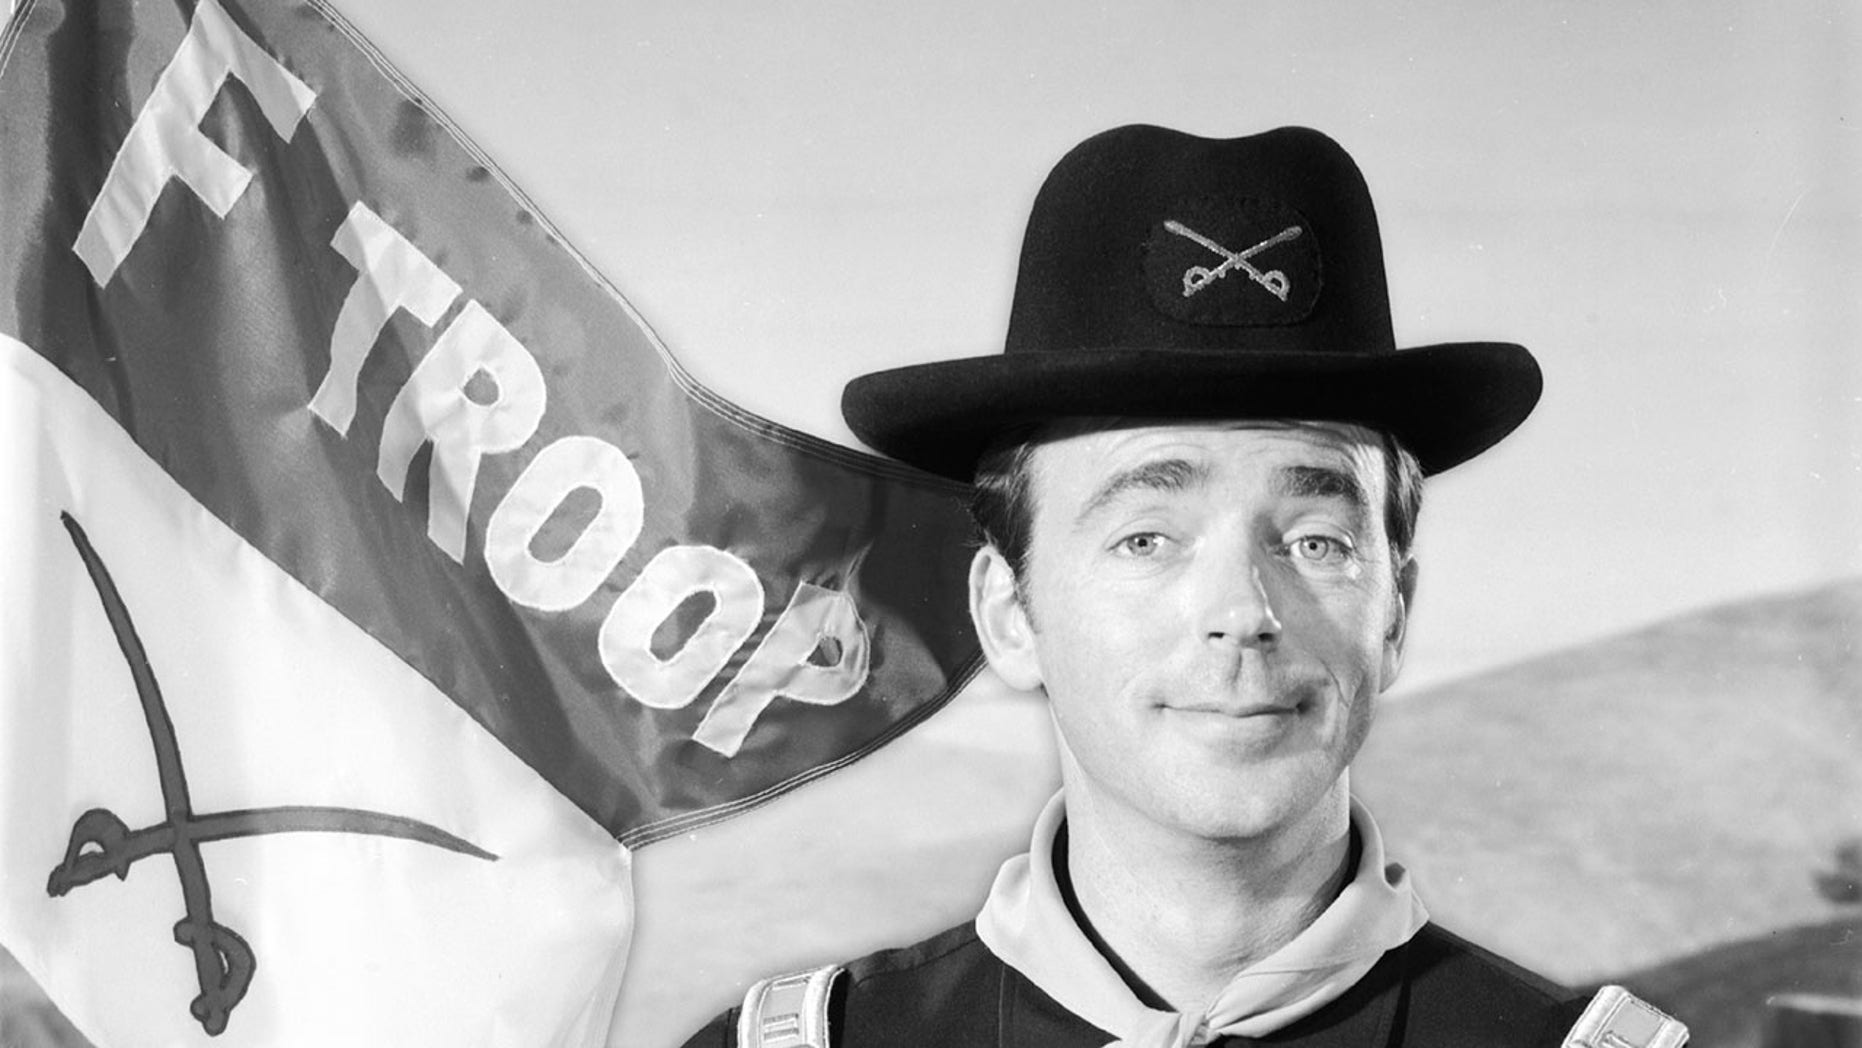 """Ken Berry, who portrayed Capt. Wilton Parmenter on """"F Troop"""" during the 1960s, died Saturday at age 85, Fox News can confirm. (ABC via Getty Images)"""